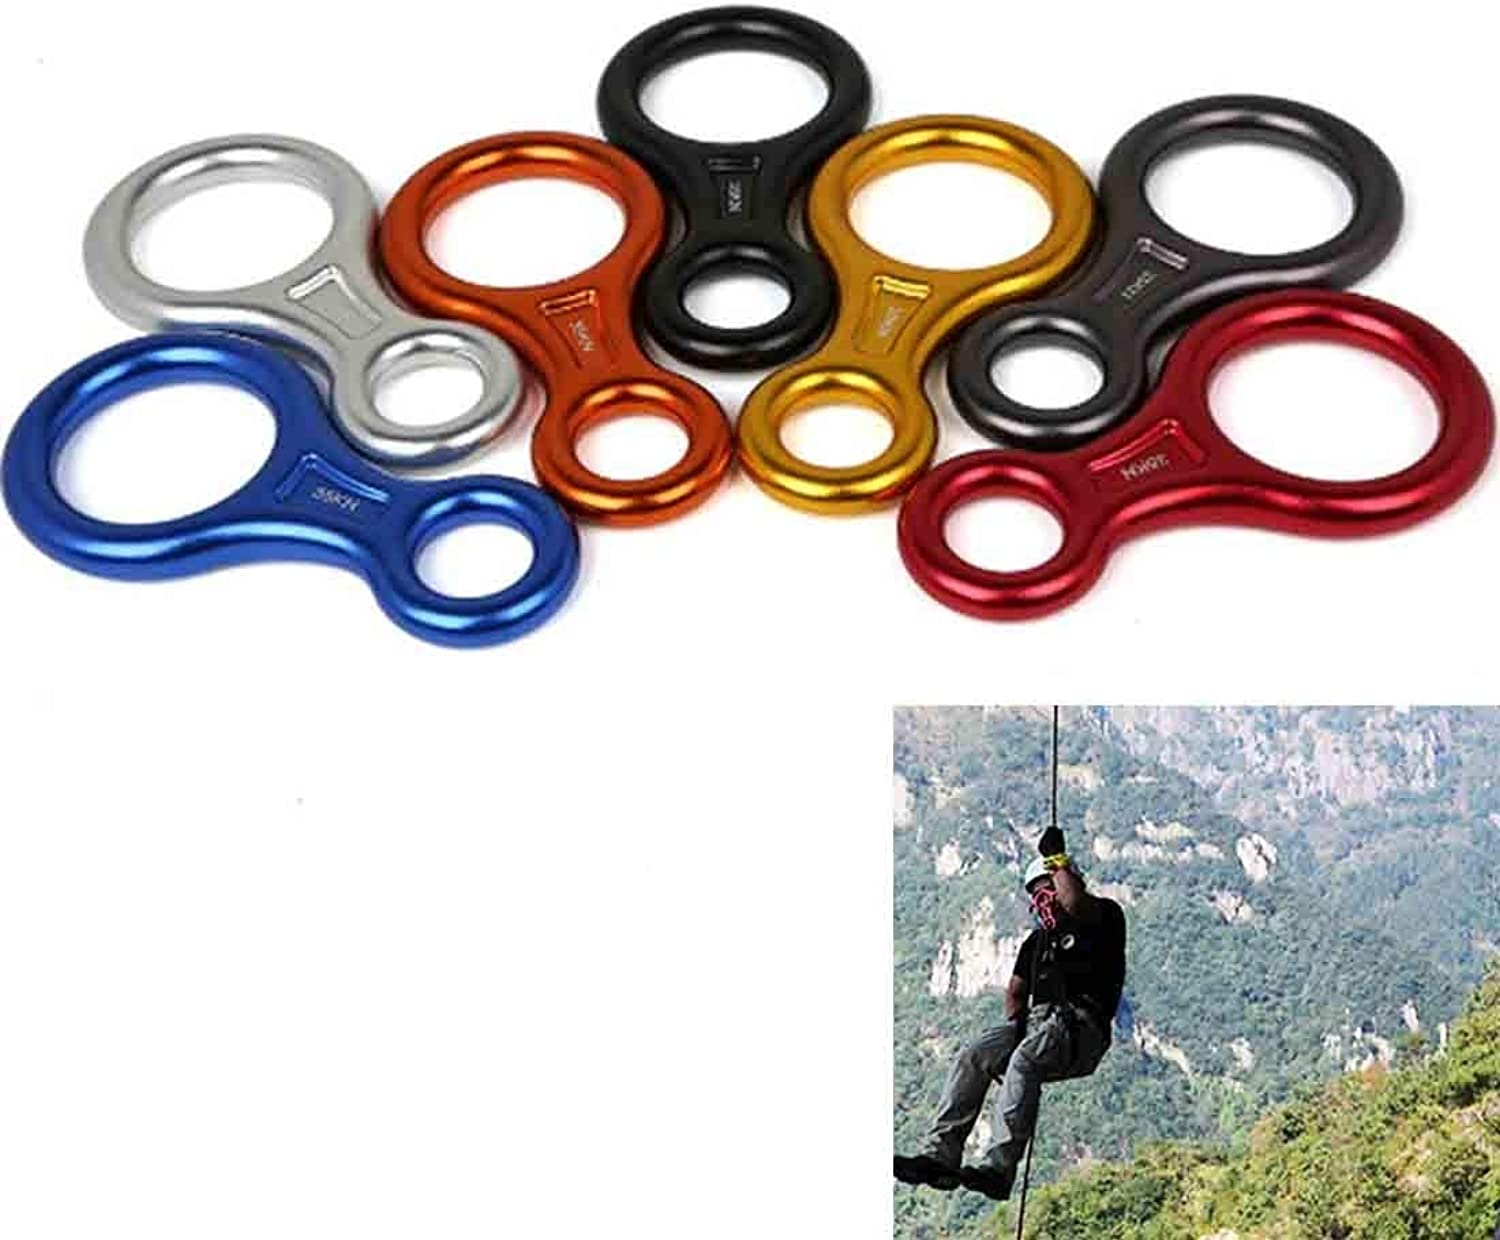 Beautiful for Outdoor Mountaineering Climbing Rescue Figure 8 Descender Downhill Equipment, Rescue, Training, Size  14.4  7.4  1.5cm Home